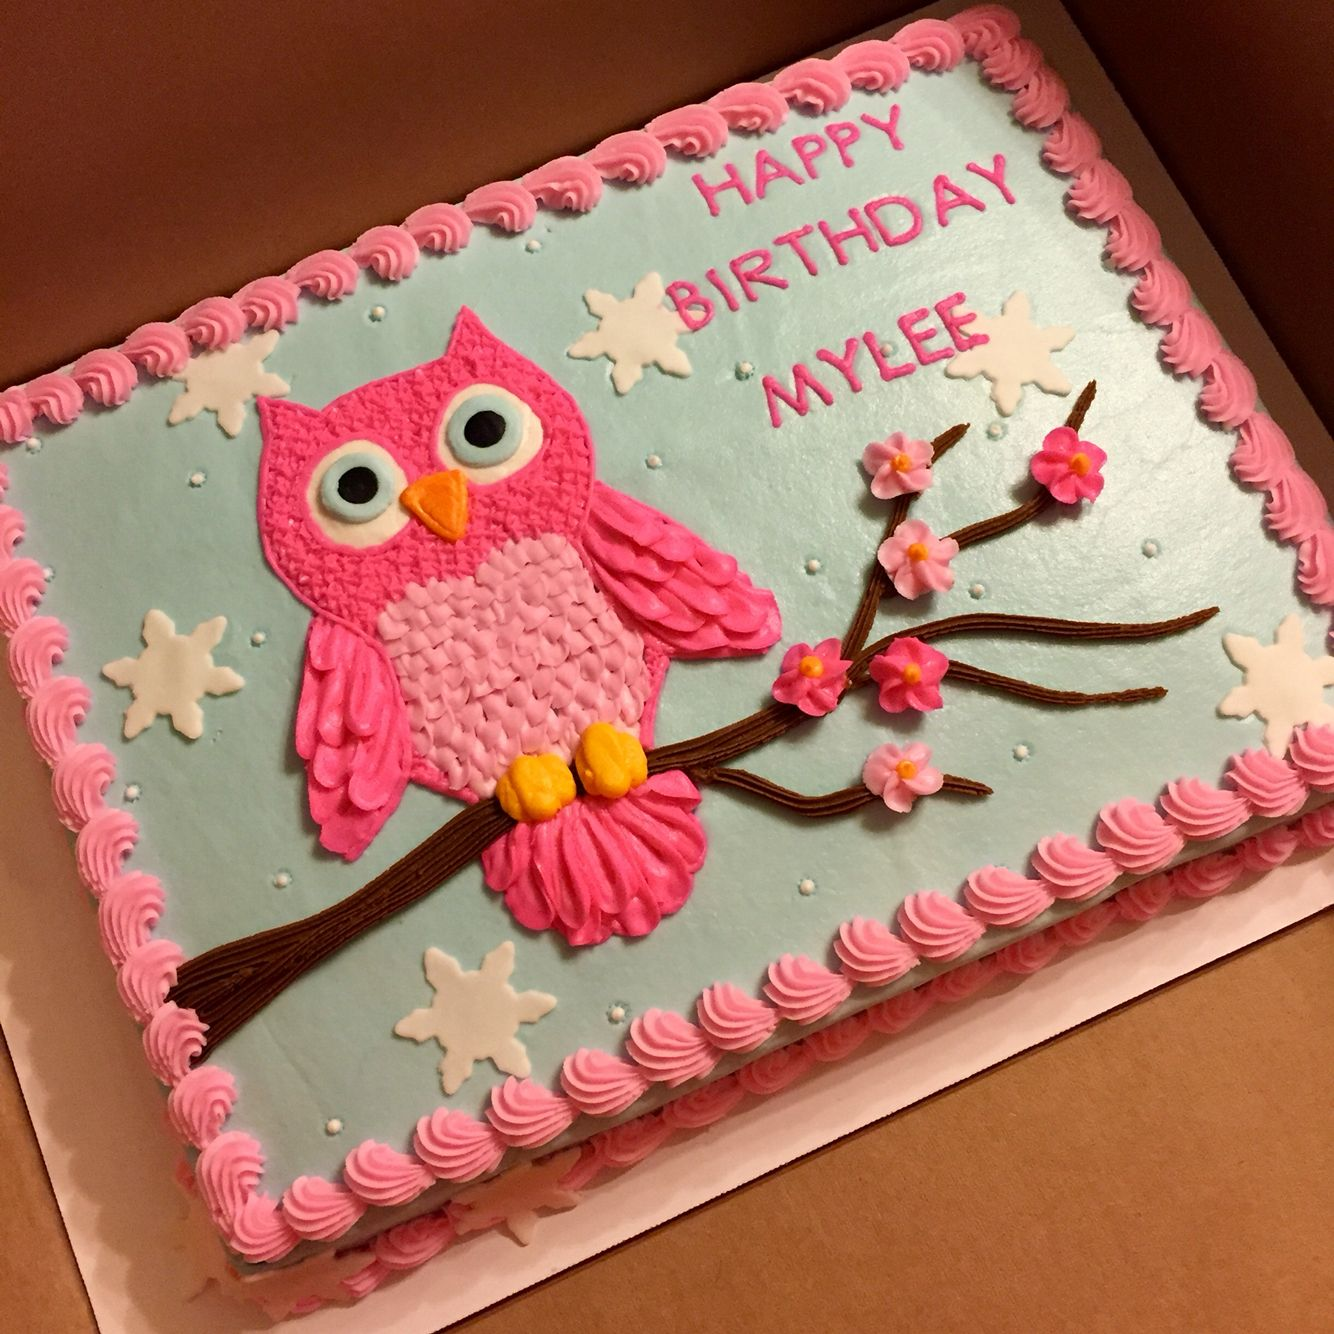 Owl Cake Done With Buttercream Decorations